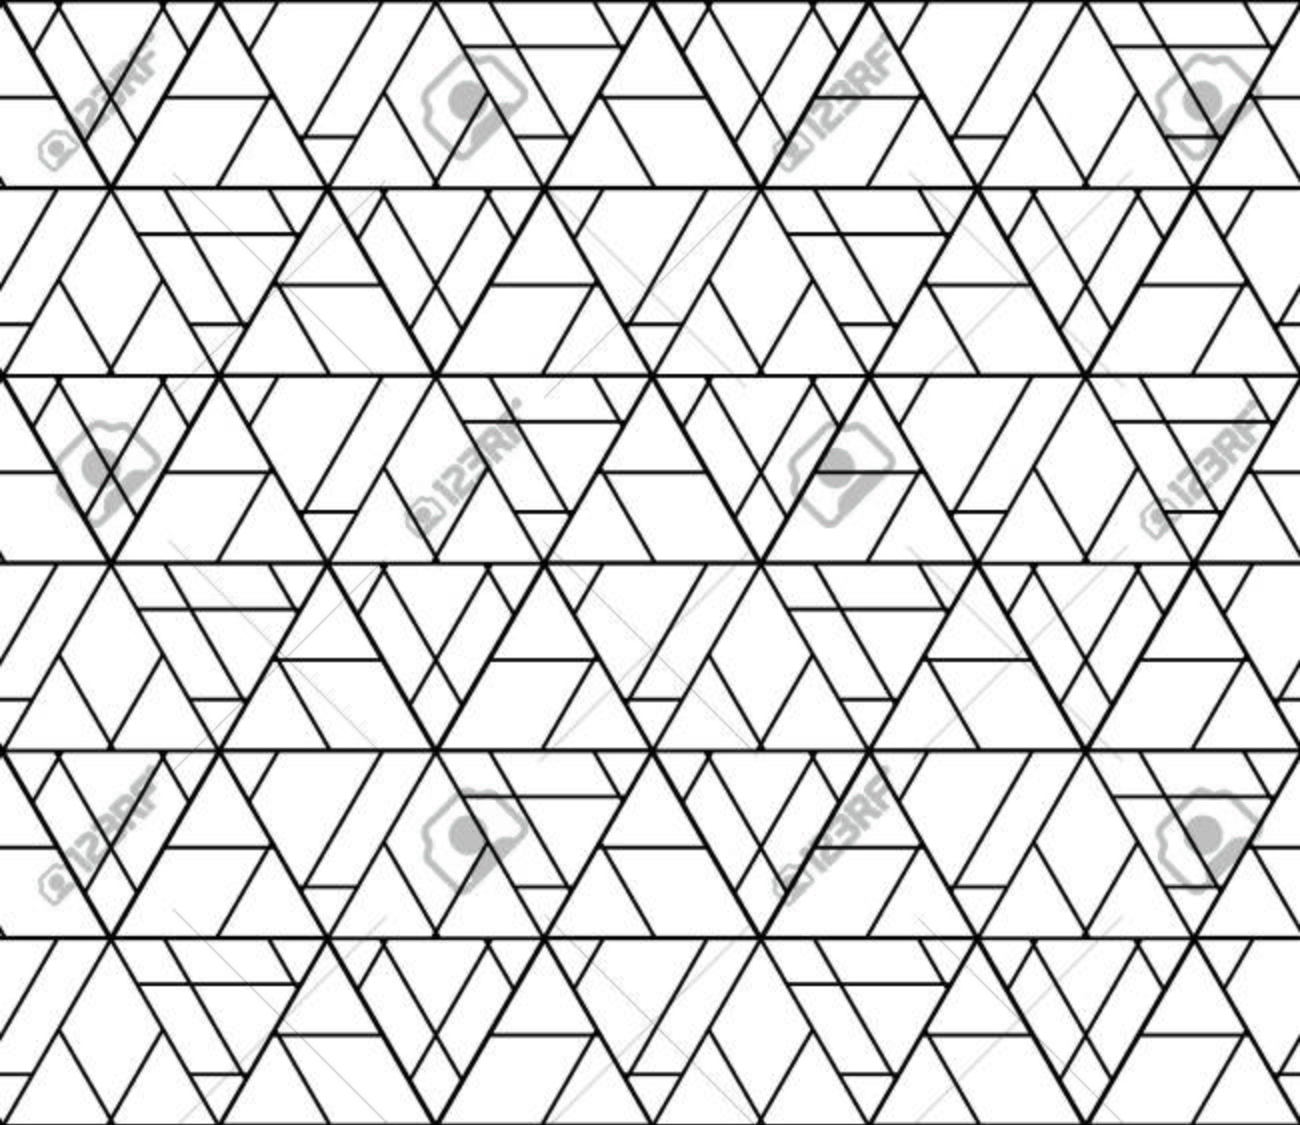 Vector black and white seamless abstract pattern ,Modern textile print with illusion, modern texture, Symmetrical repeating background - 43593810